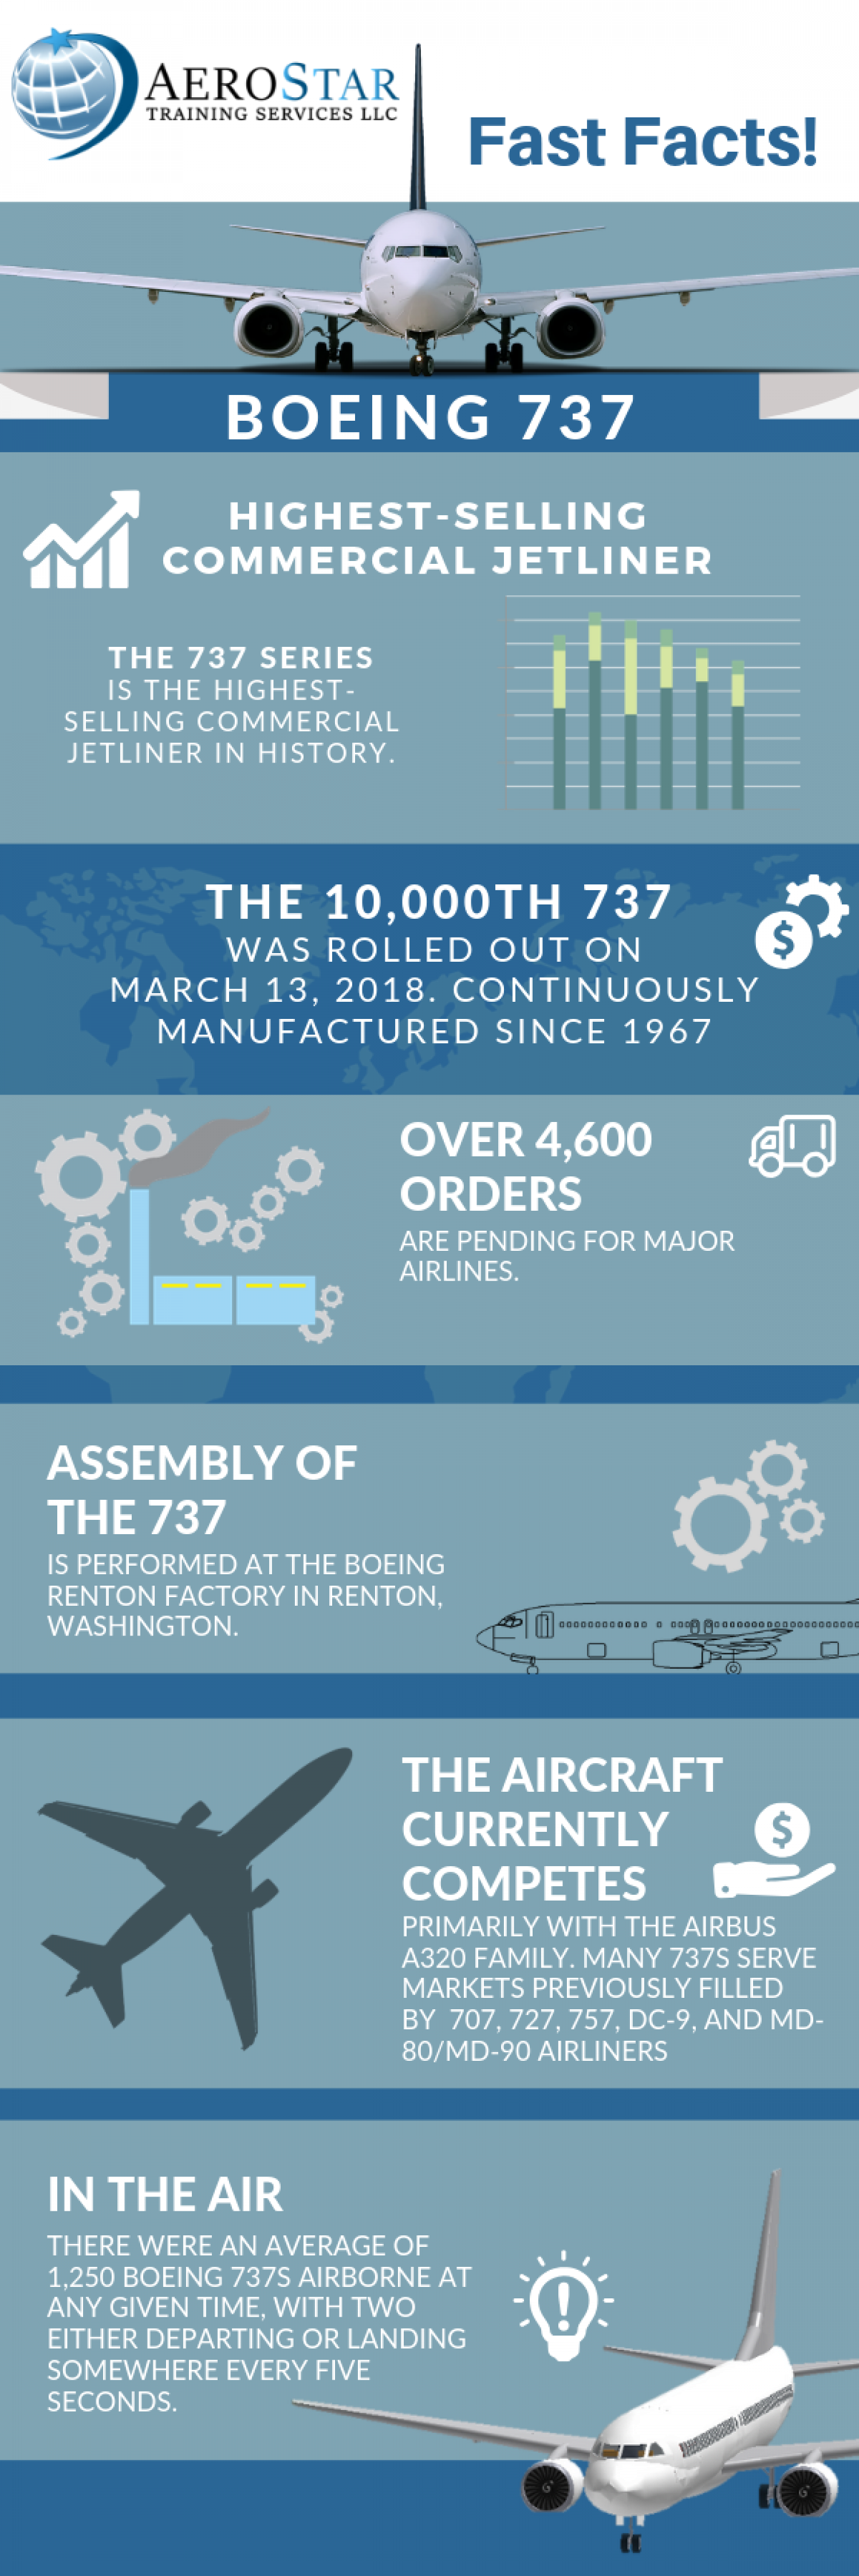 Boeing 737-  Fast Facts About the B737 Airliner Infographic